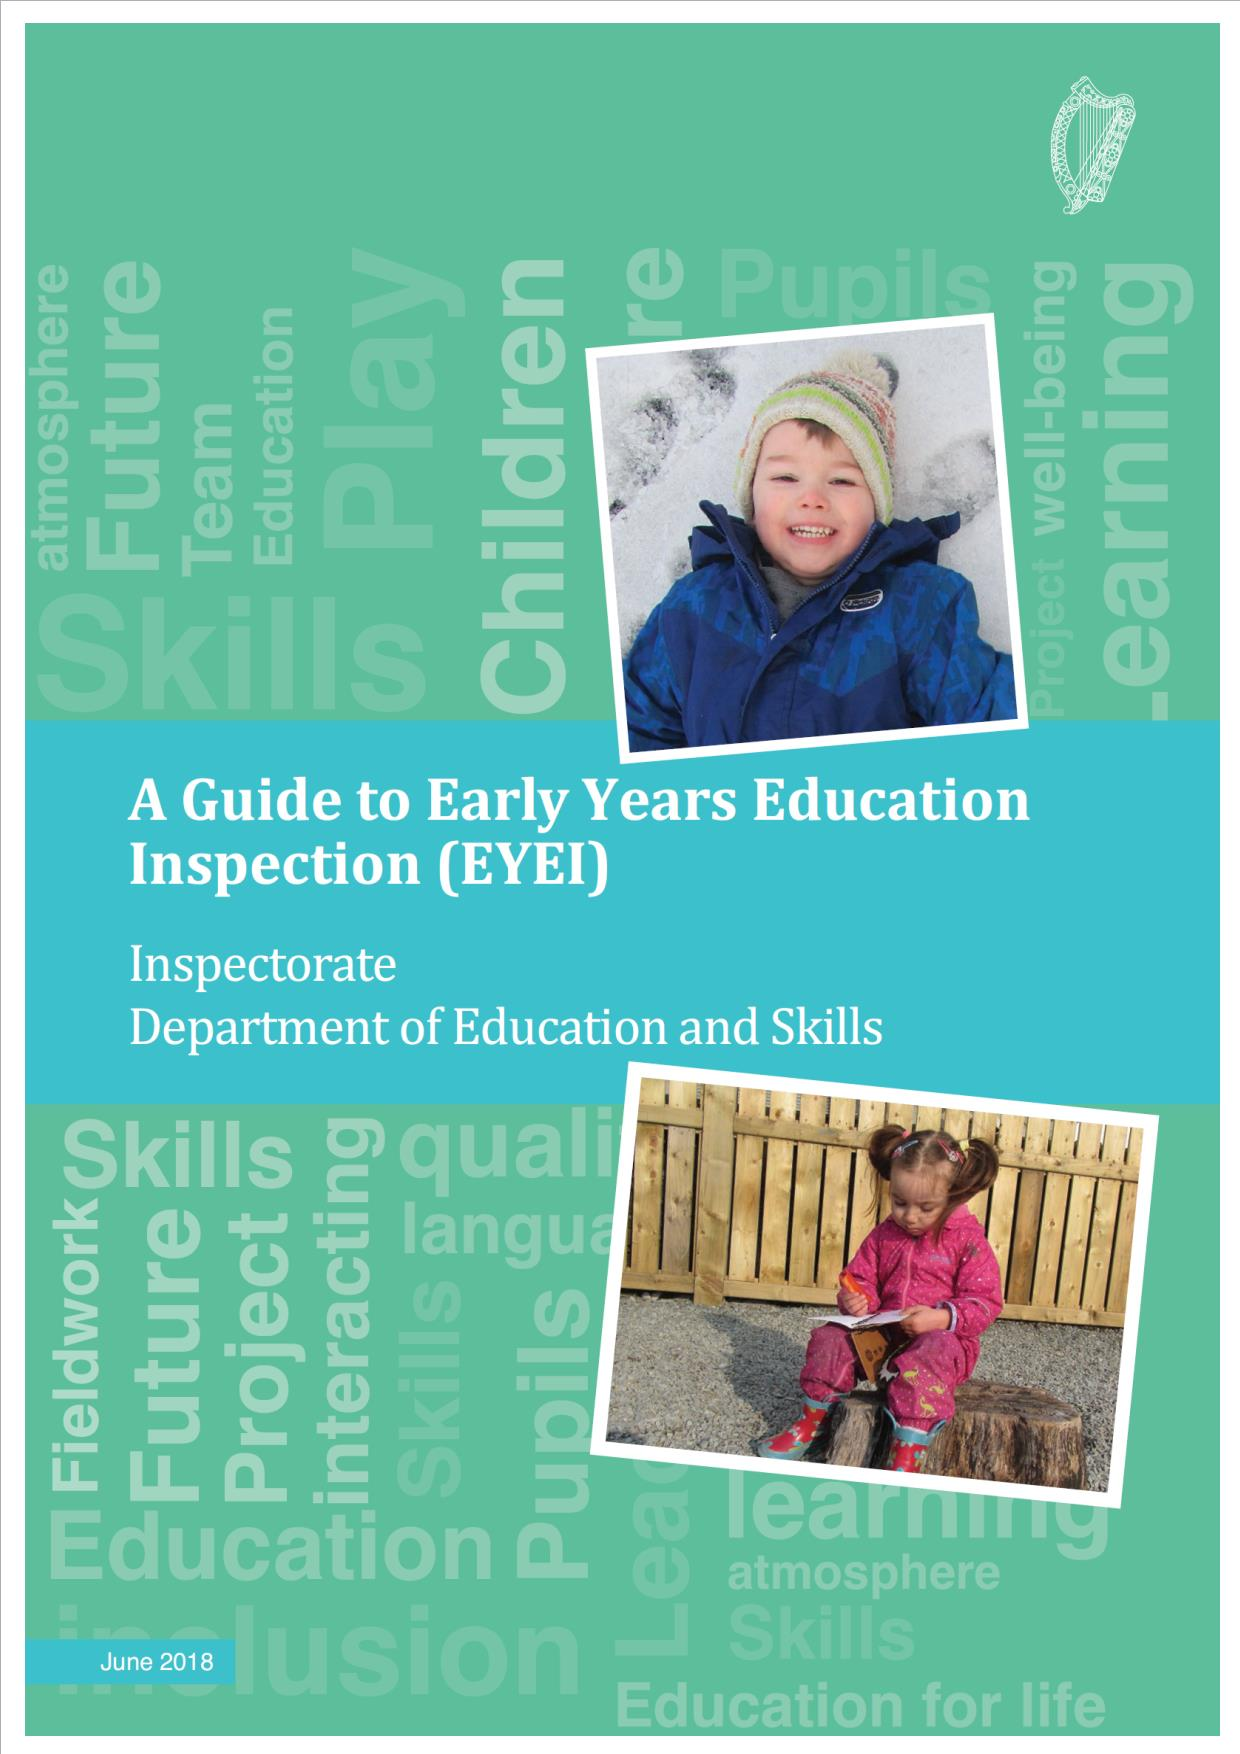 A guide to early years education inspection